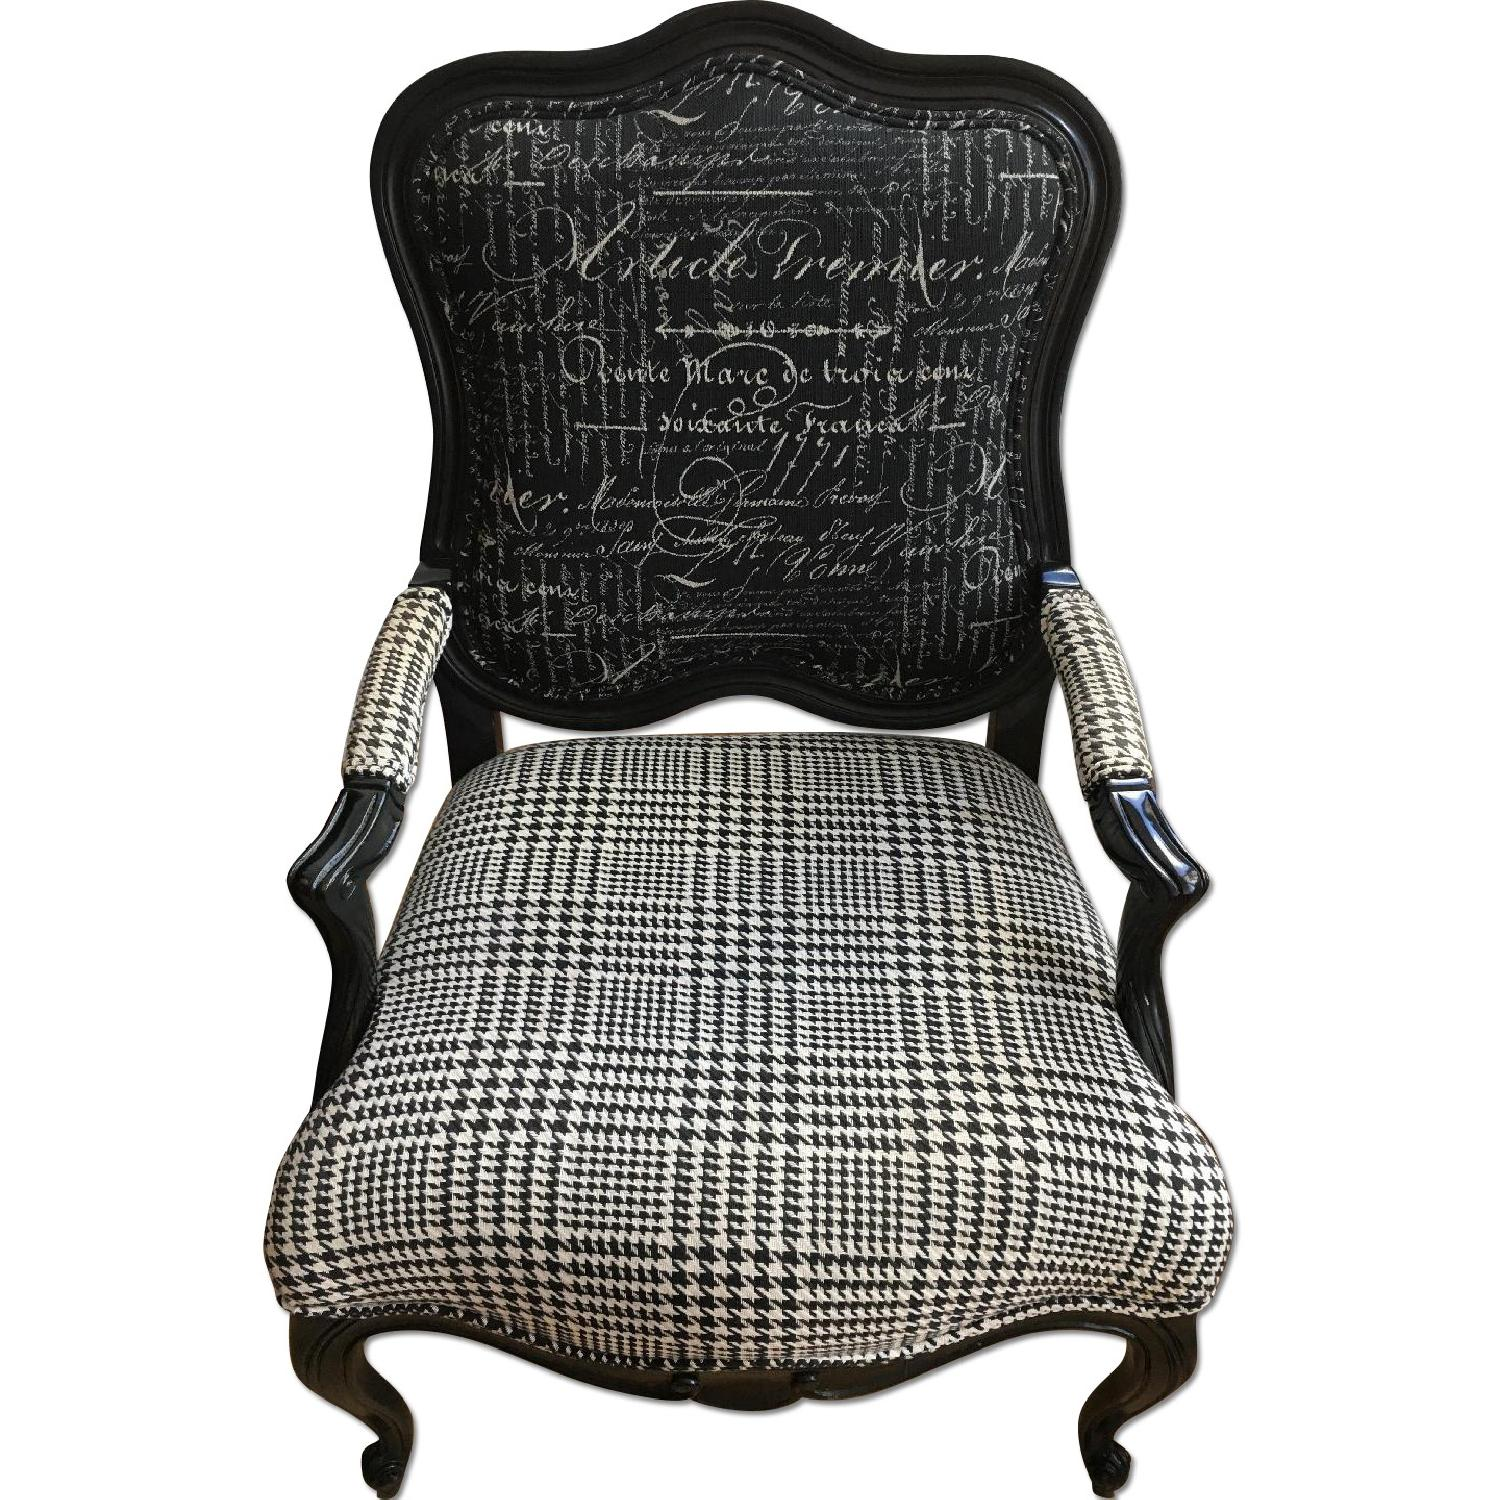 Neiman Marcus Horchow Accent Chairs - image-0